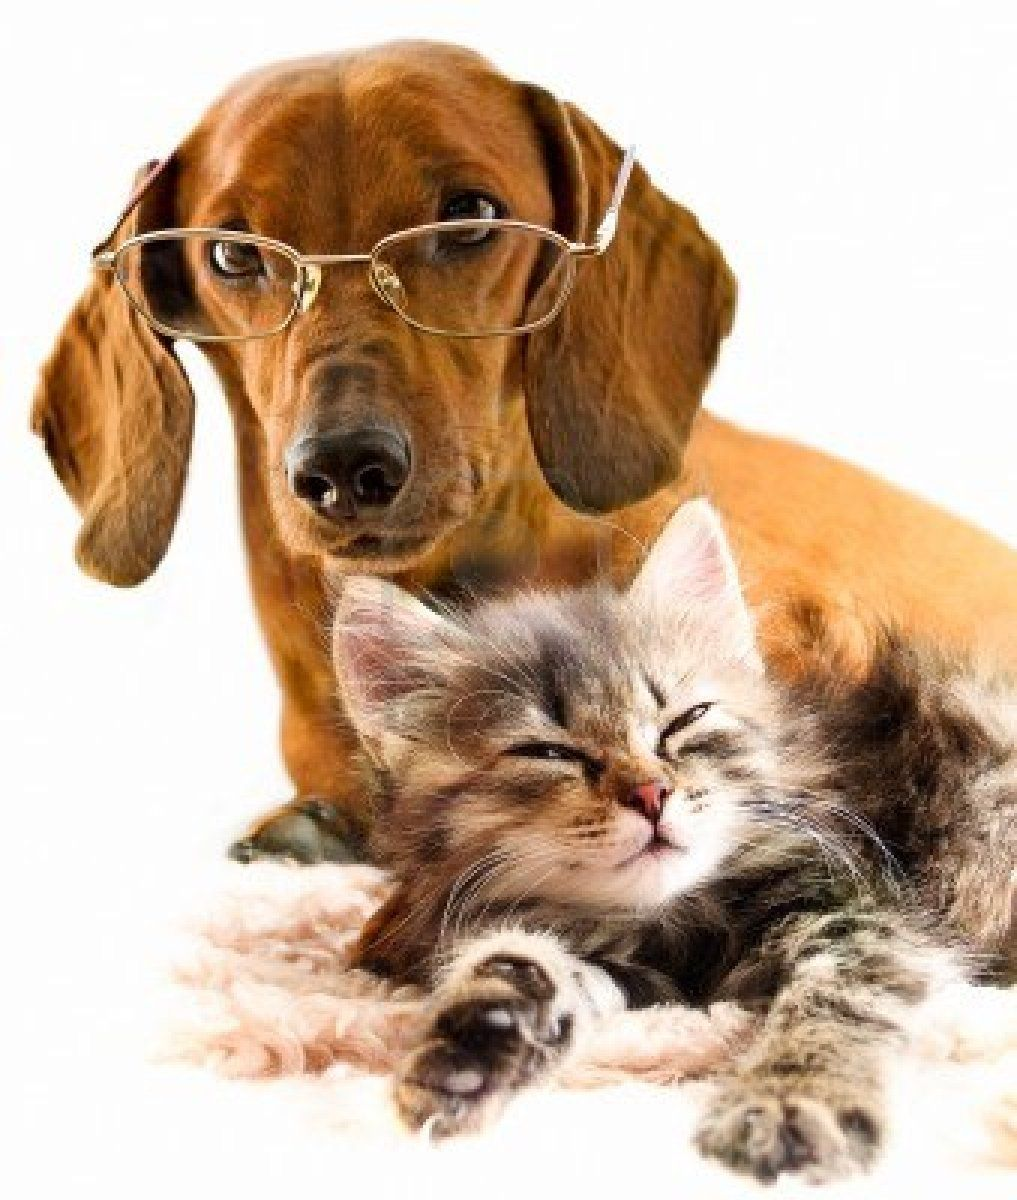 cute dog Dog cat pictures, Cute cats and dogs, Clever dog